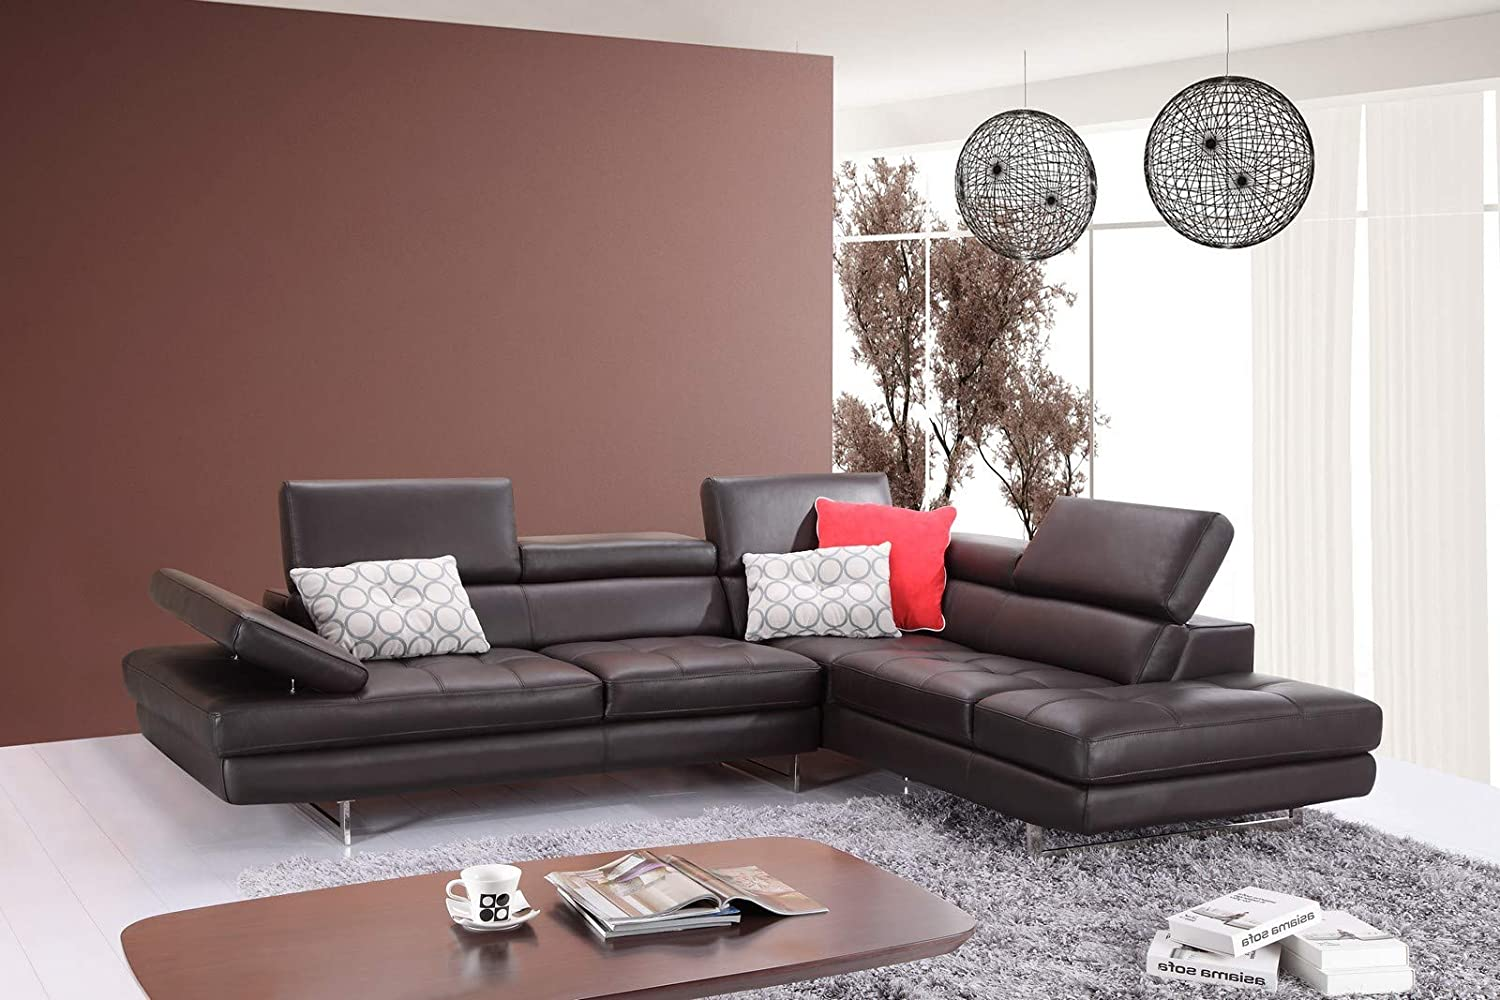 J M Furniture A761 Italian Leather Sectional Slate Coffee In Right Hand Facing Furniture Decor